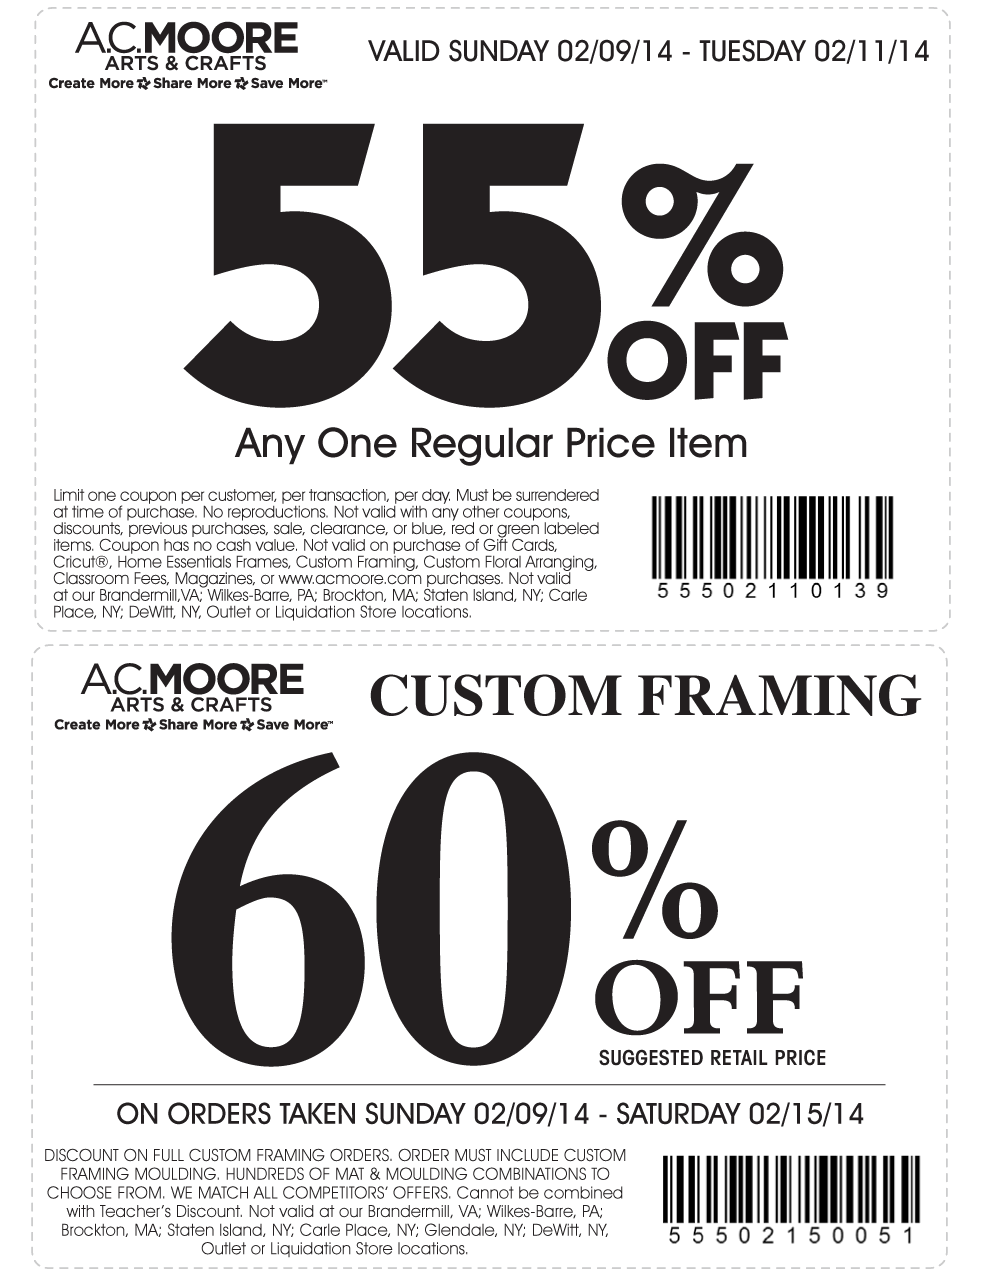 photograph regarding Ac Moore Printable Coupons referred to as Pinned February 10th: 55% off a solitary products at A.#C. Moore